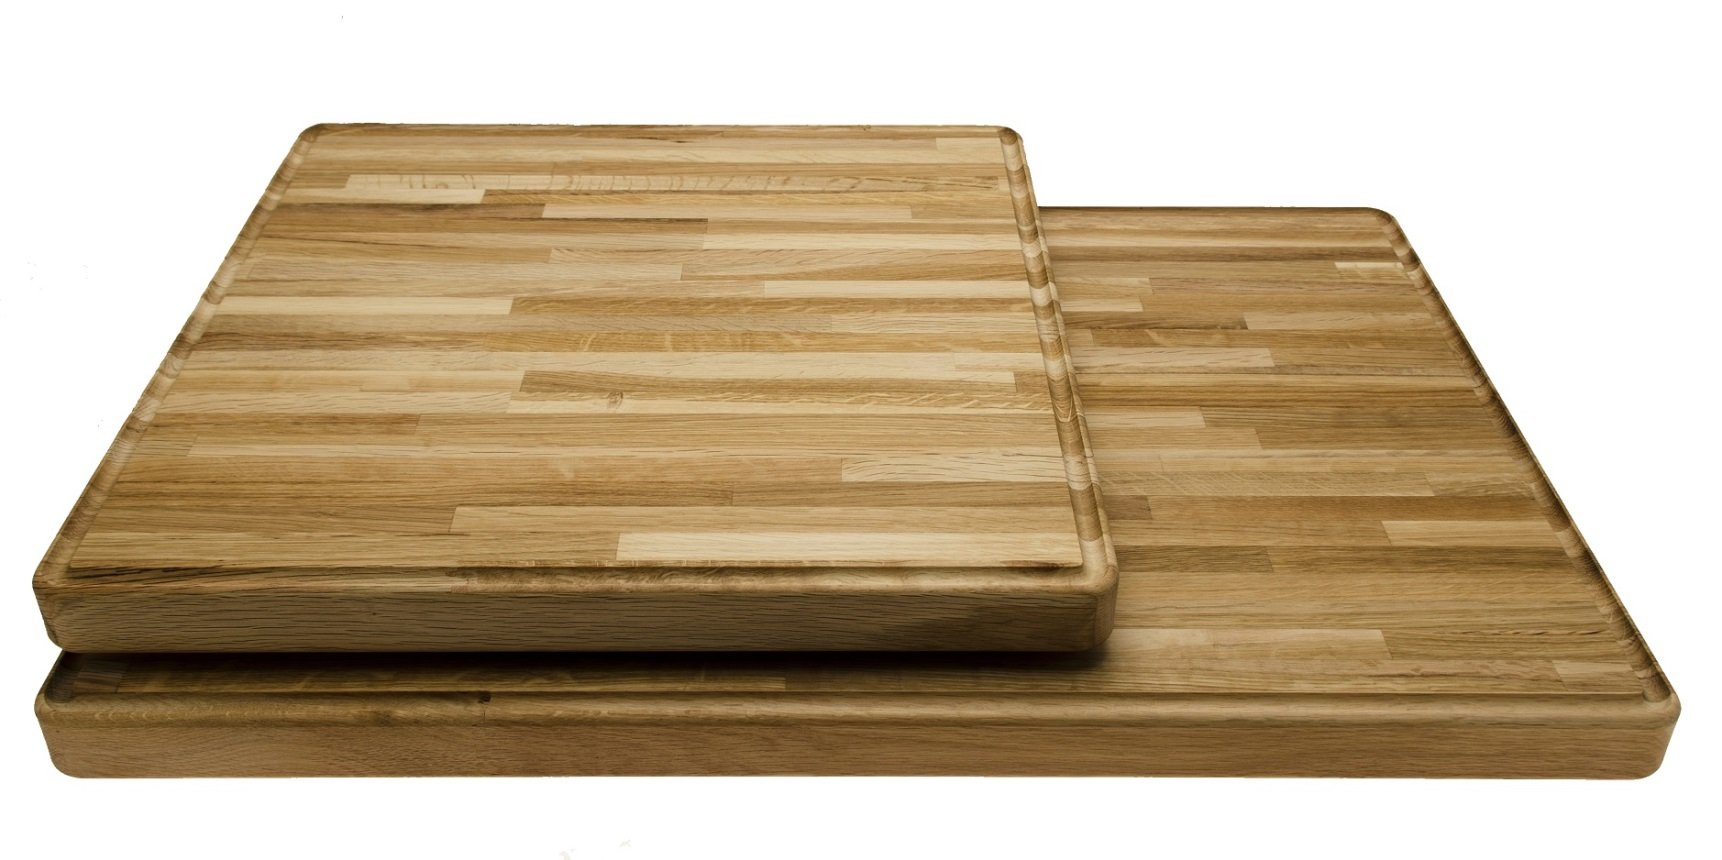 Legnoart LA-BBO Oak Butcher Block, Large, Brown by Legnoart (Image #1)